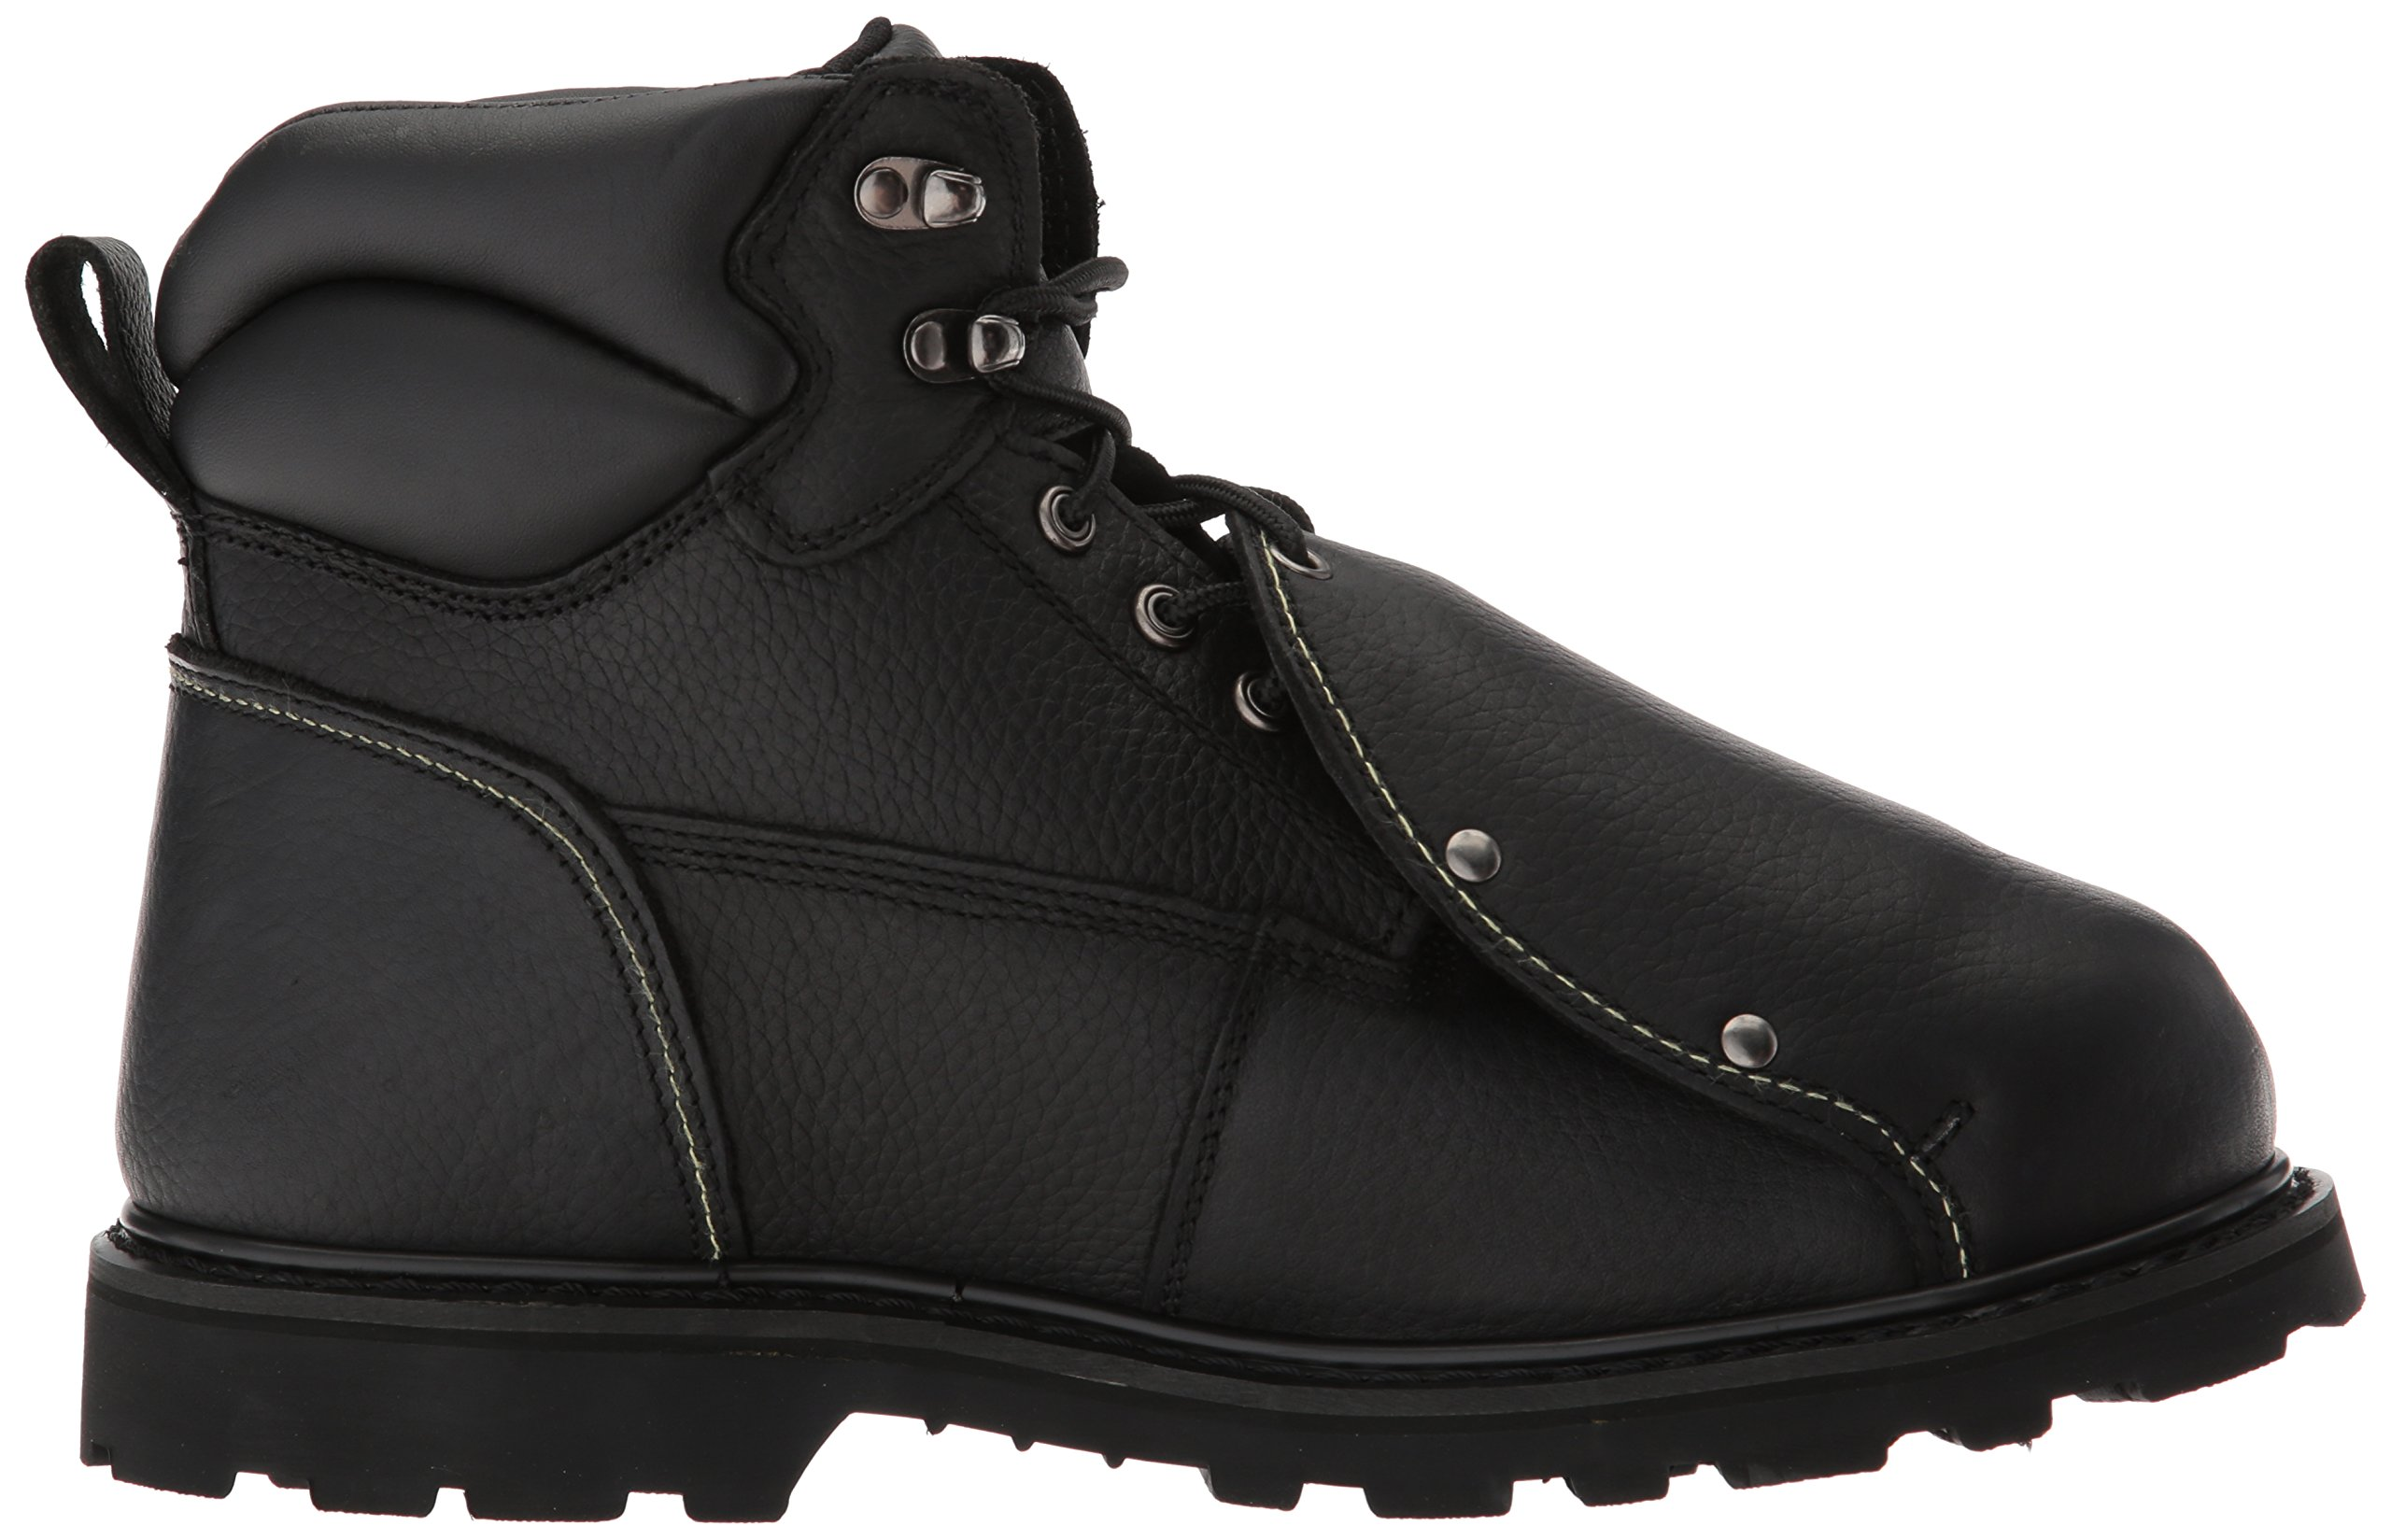 Iron Age Men's Ia5016 Ground Breaker Industrial and Construction Shoe, Black, 10.5 M US by Iron Age (Image #7)